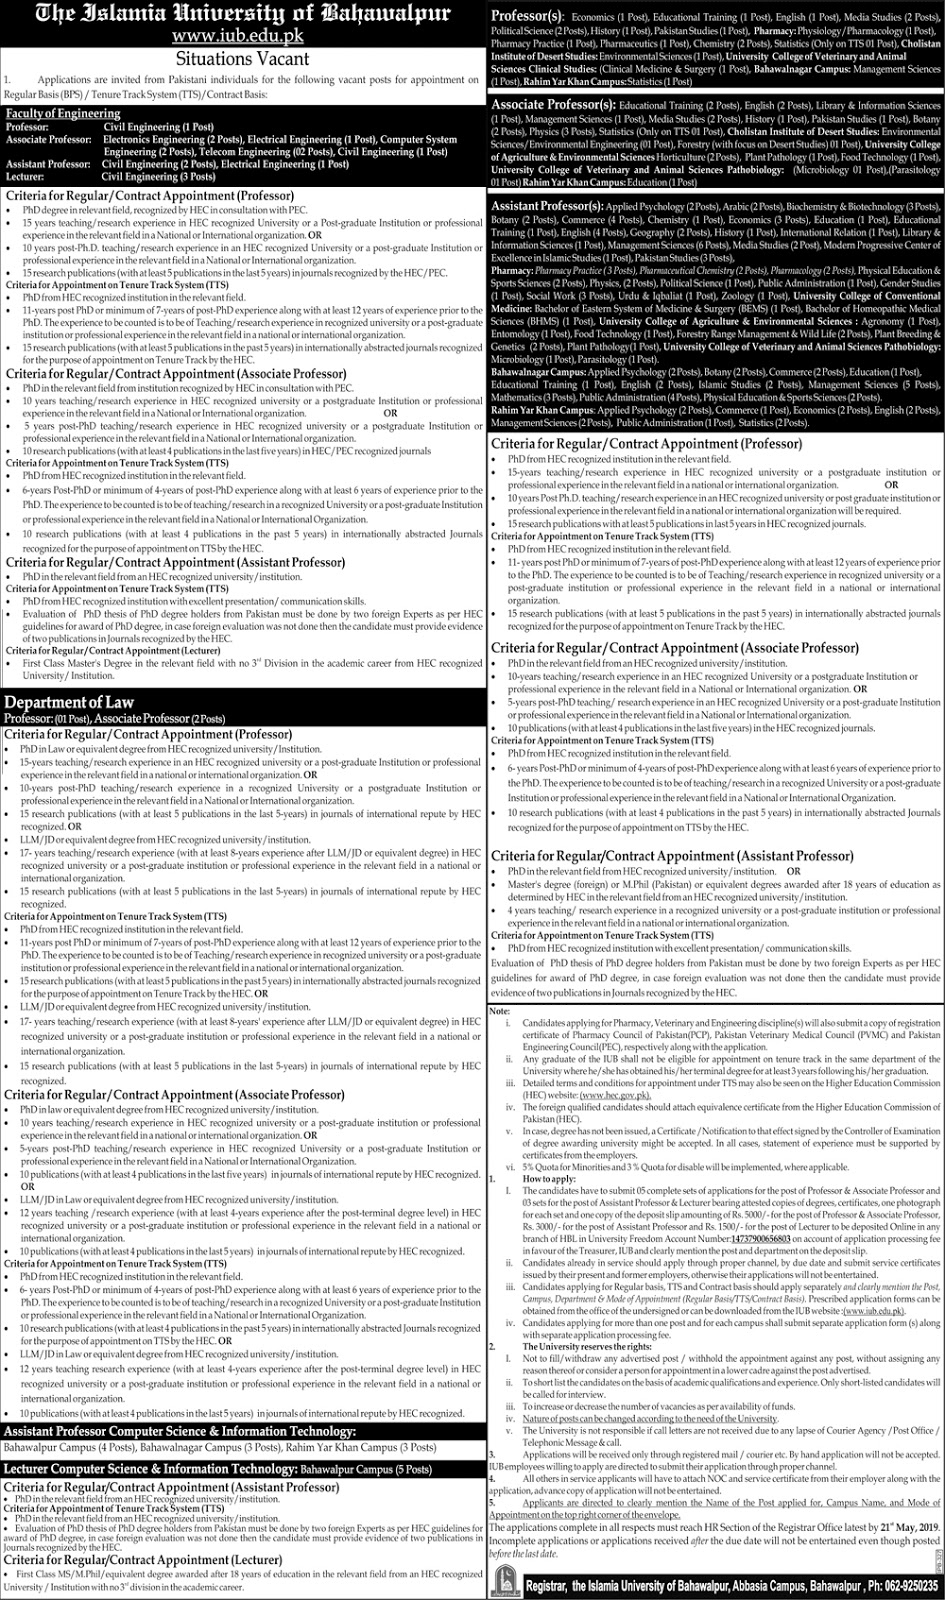 The Islamia University of Bahawalpur Apr 2019 Jobs